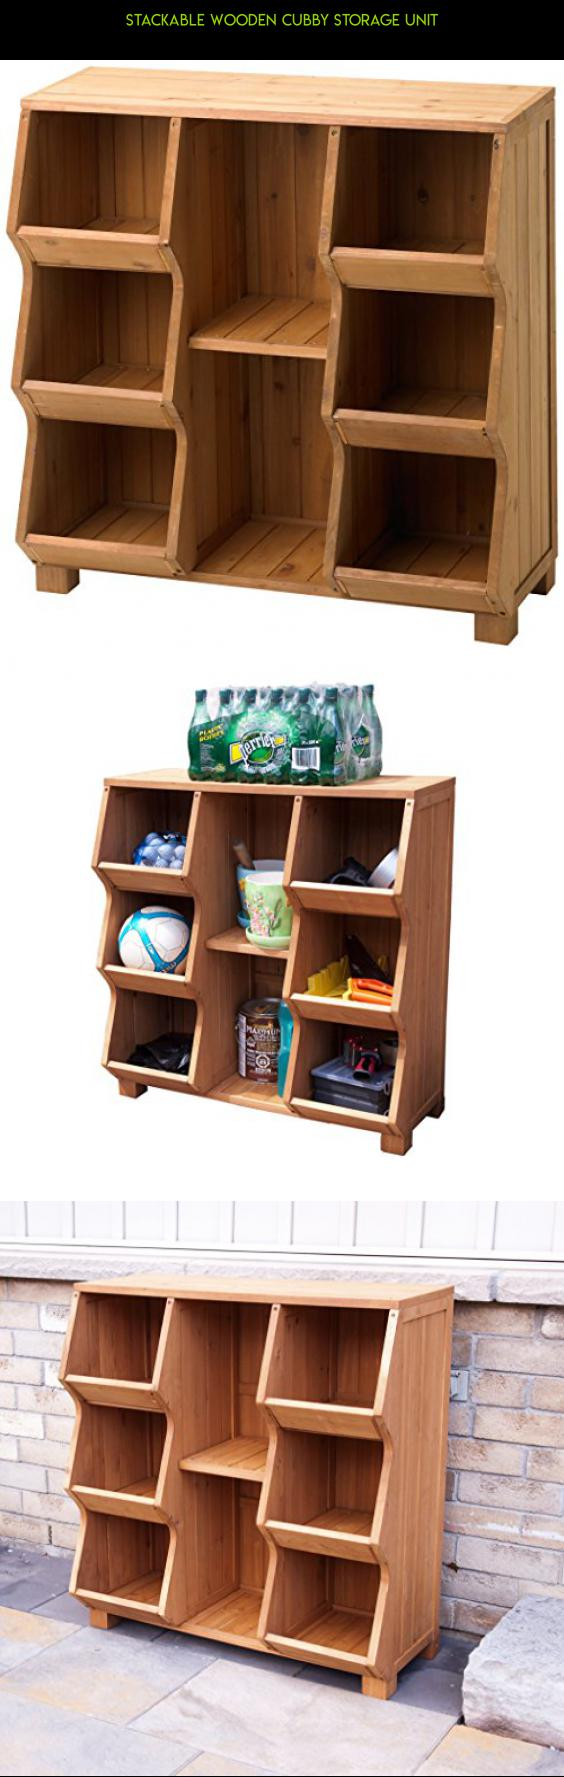 Stackable Wooden Cubby Storage Unit #racing #parts #unit #gadgets  #technology #